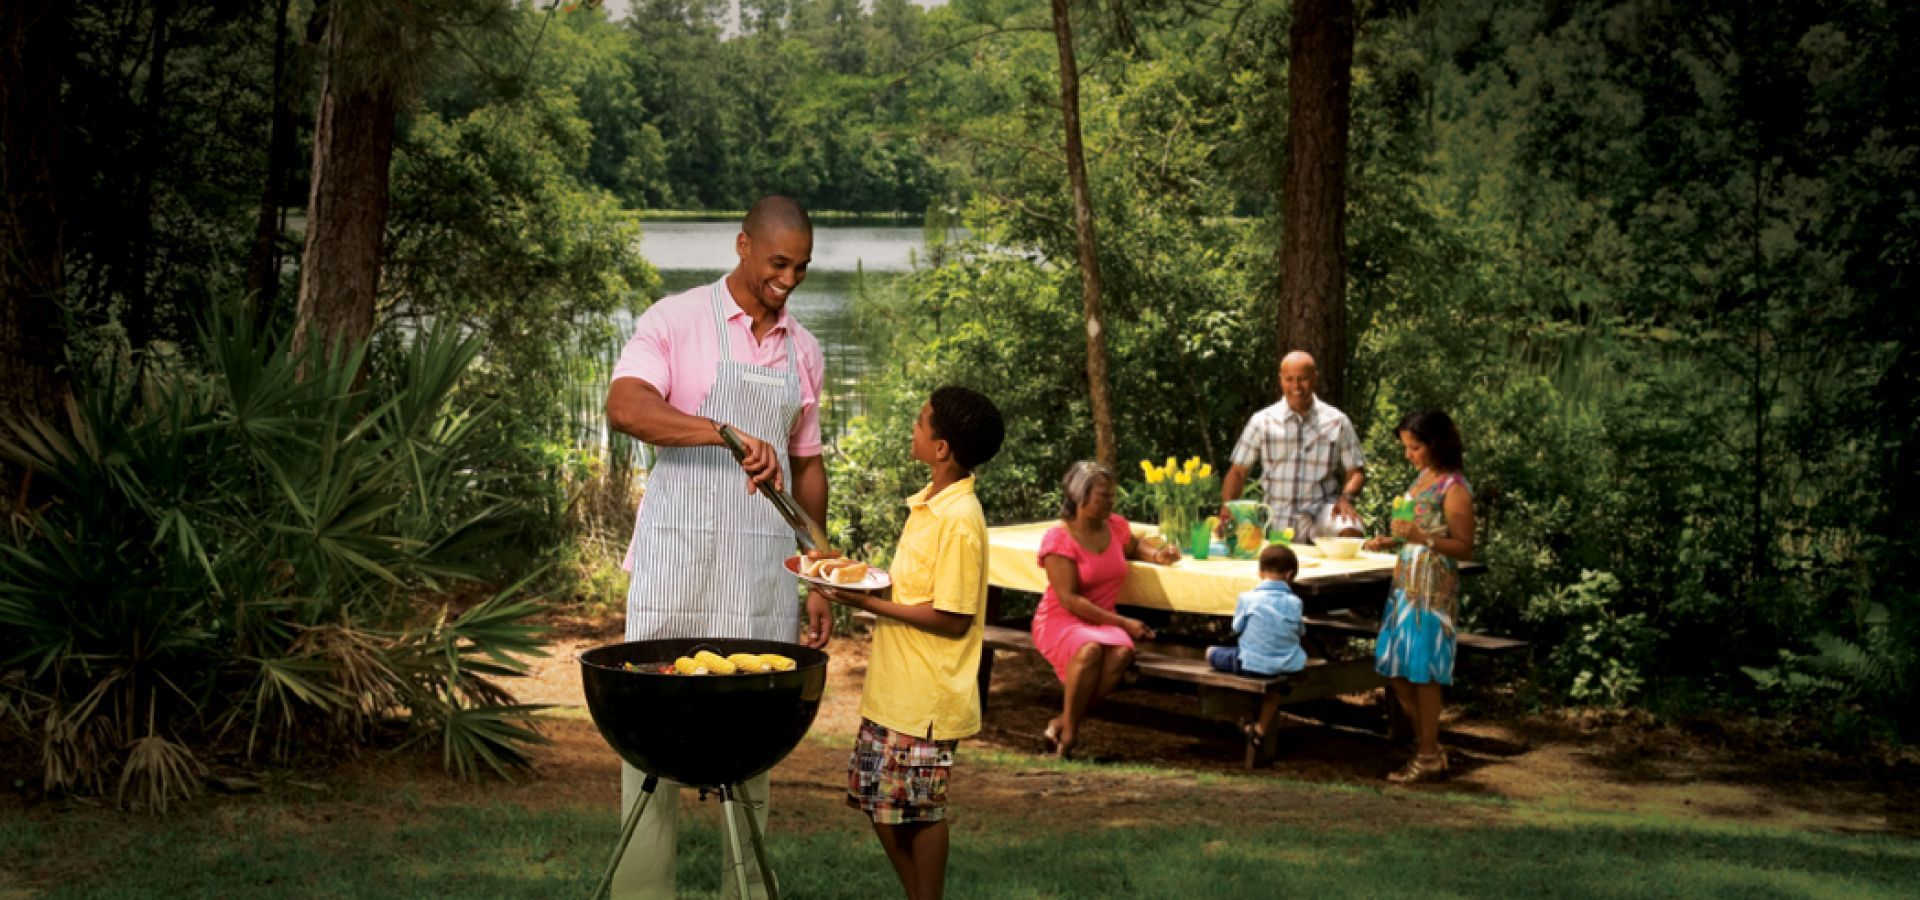 Take The Family On An Adventurous Camping Trip Jacksonville